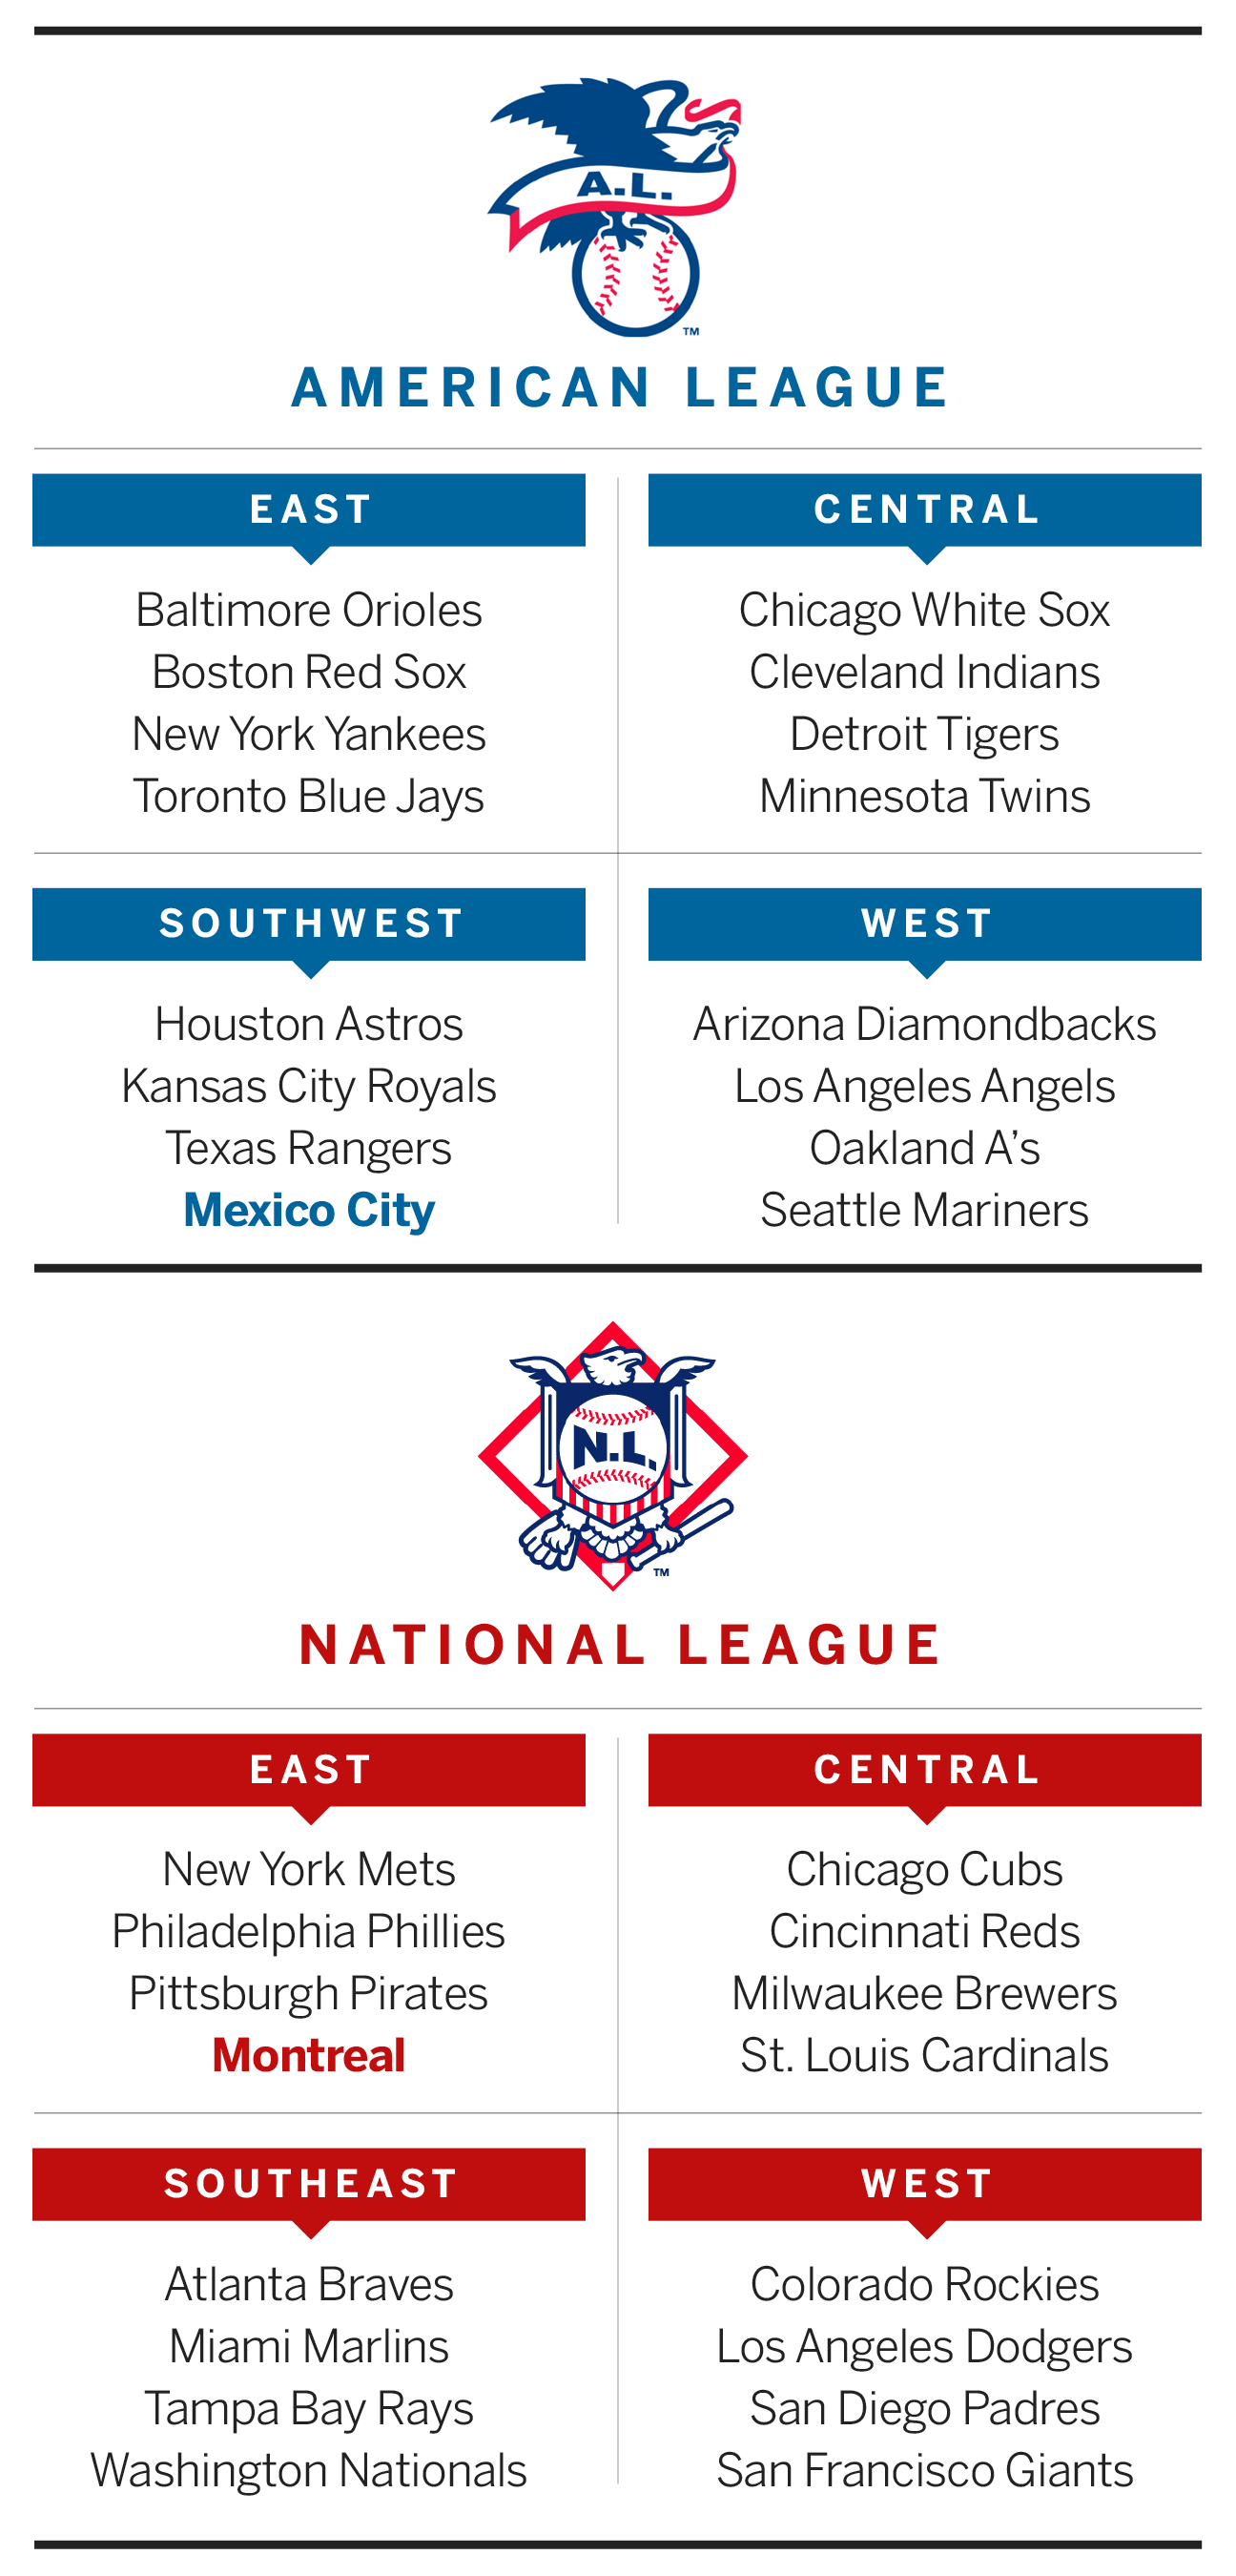 A Major League Baseball Team In Mexico City Here Are The Pros And Cons